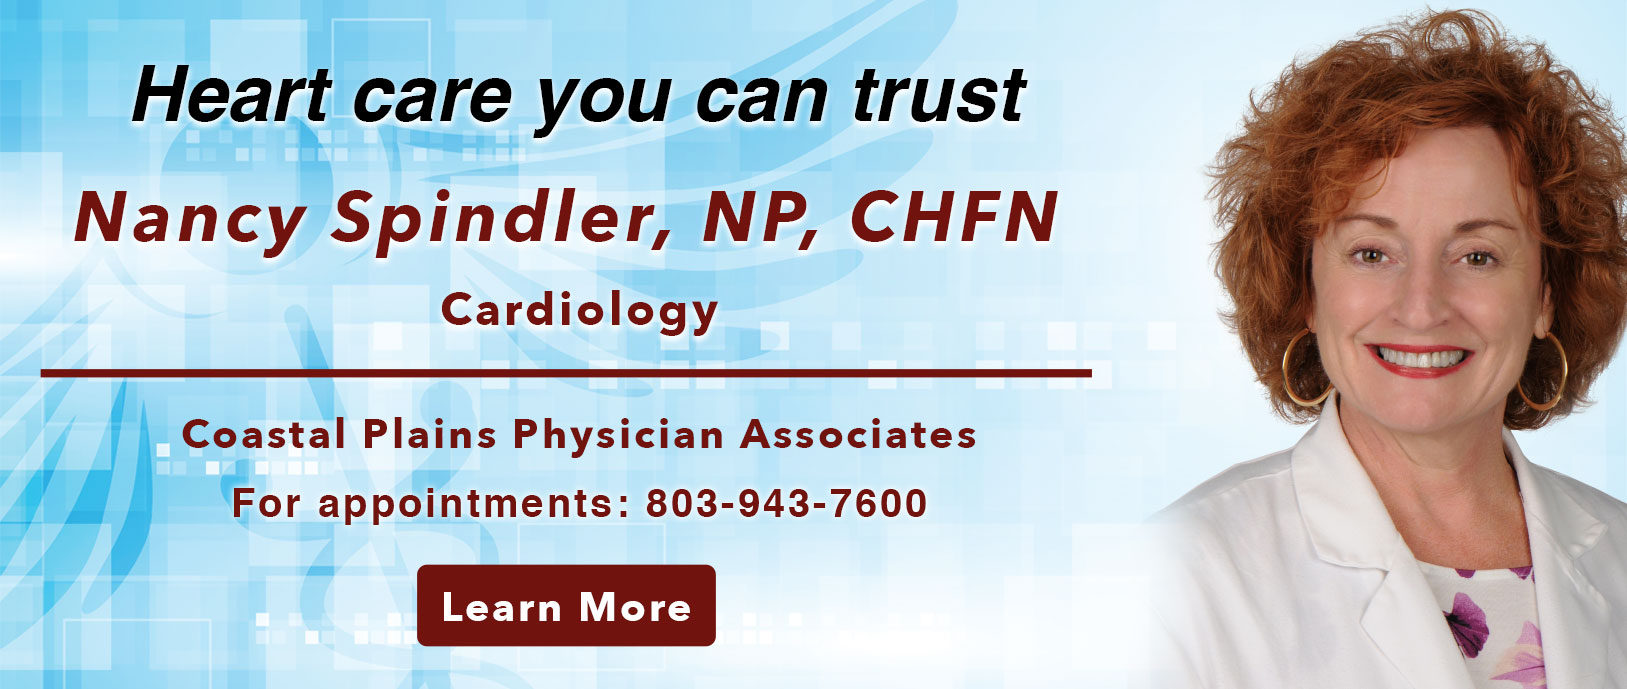 Heart Care you can trust. Welcome. Nancy Spindler, NP CHFN Cardiology. Coastal Plains Physician Associates. For appointments: 803-943-7600. Learn More